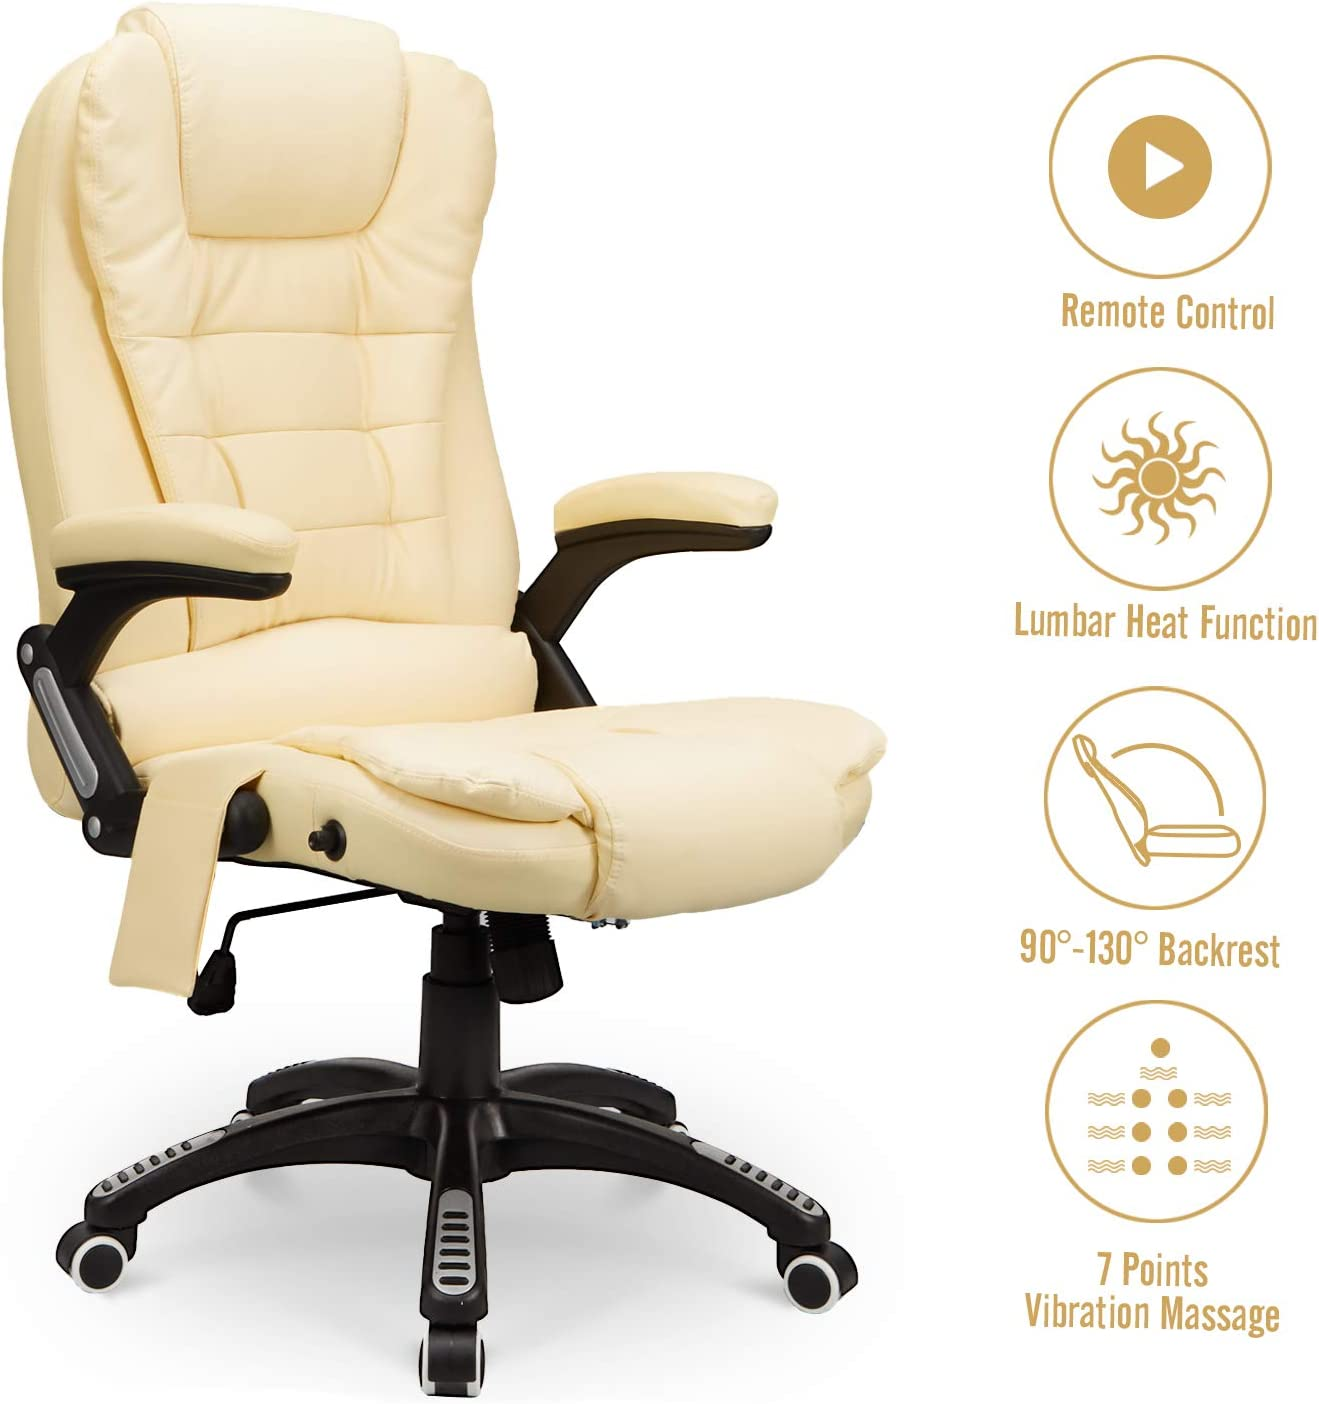 Esright Ergonomic Office Chair High Back PU Leather Computer Chair Height Adjustable Desk Chair Heated Massage Recliner Chair with Lumbar Support, Cream